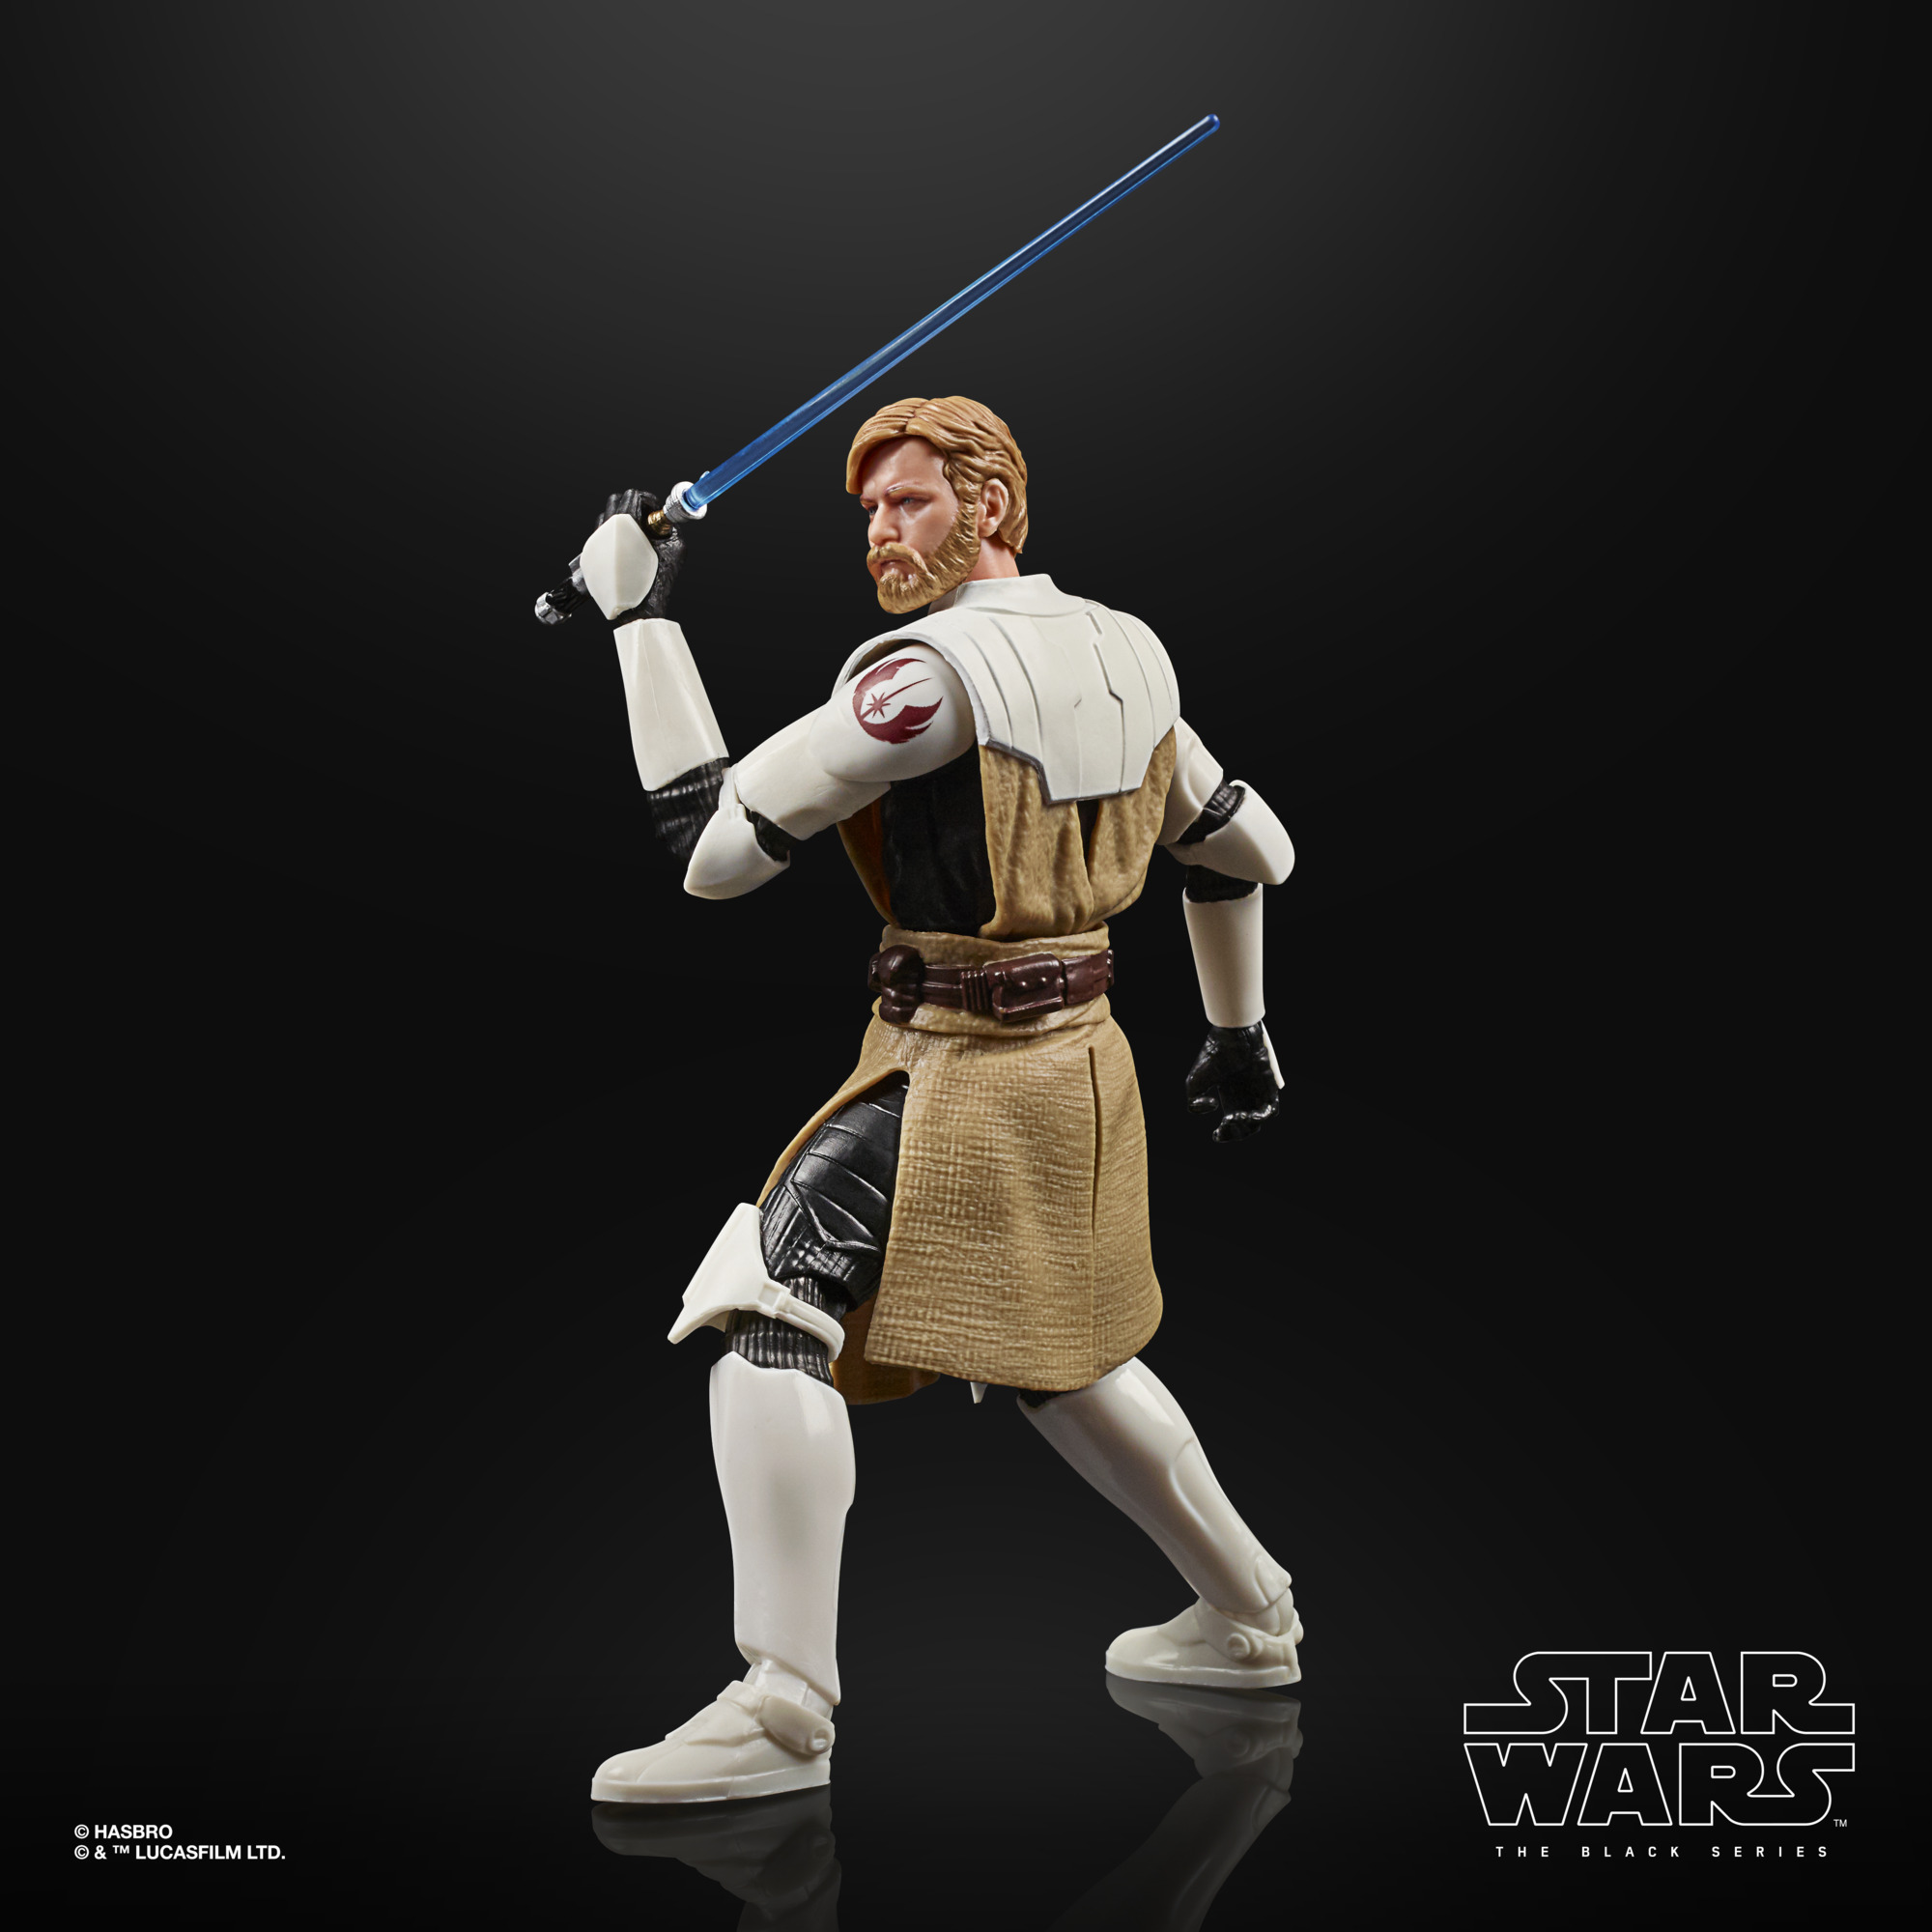 https://news.toyark.com/wp-content/uploads/sites/4/2021/04/STAR-WARS-THE-BLACK-SERIES-LUCASFILM-50TH-ANNIVERSARY-6-INCH-OBI-WAN-KENOBI-Figure-oop-4.jpg